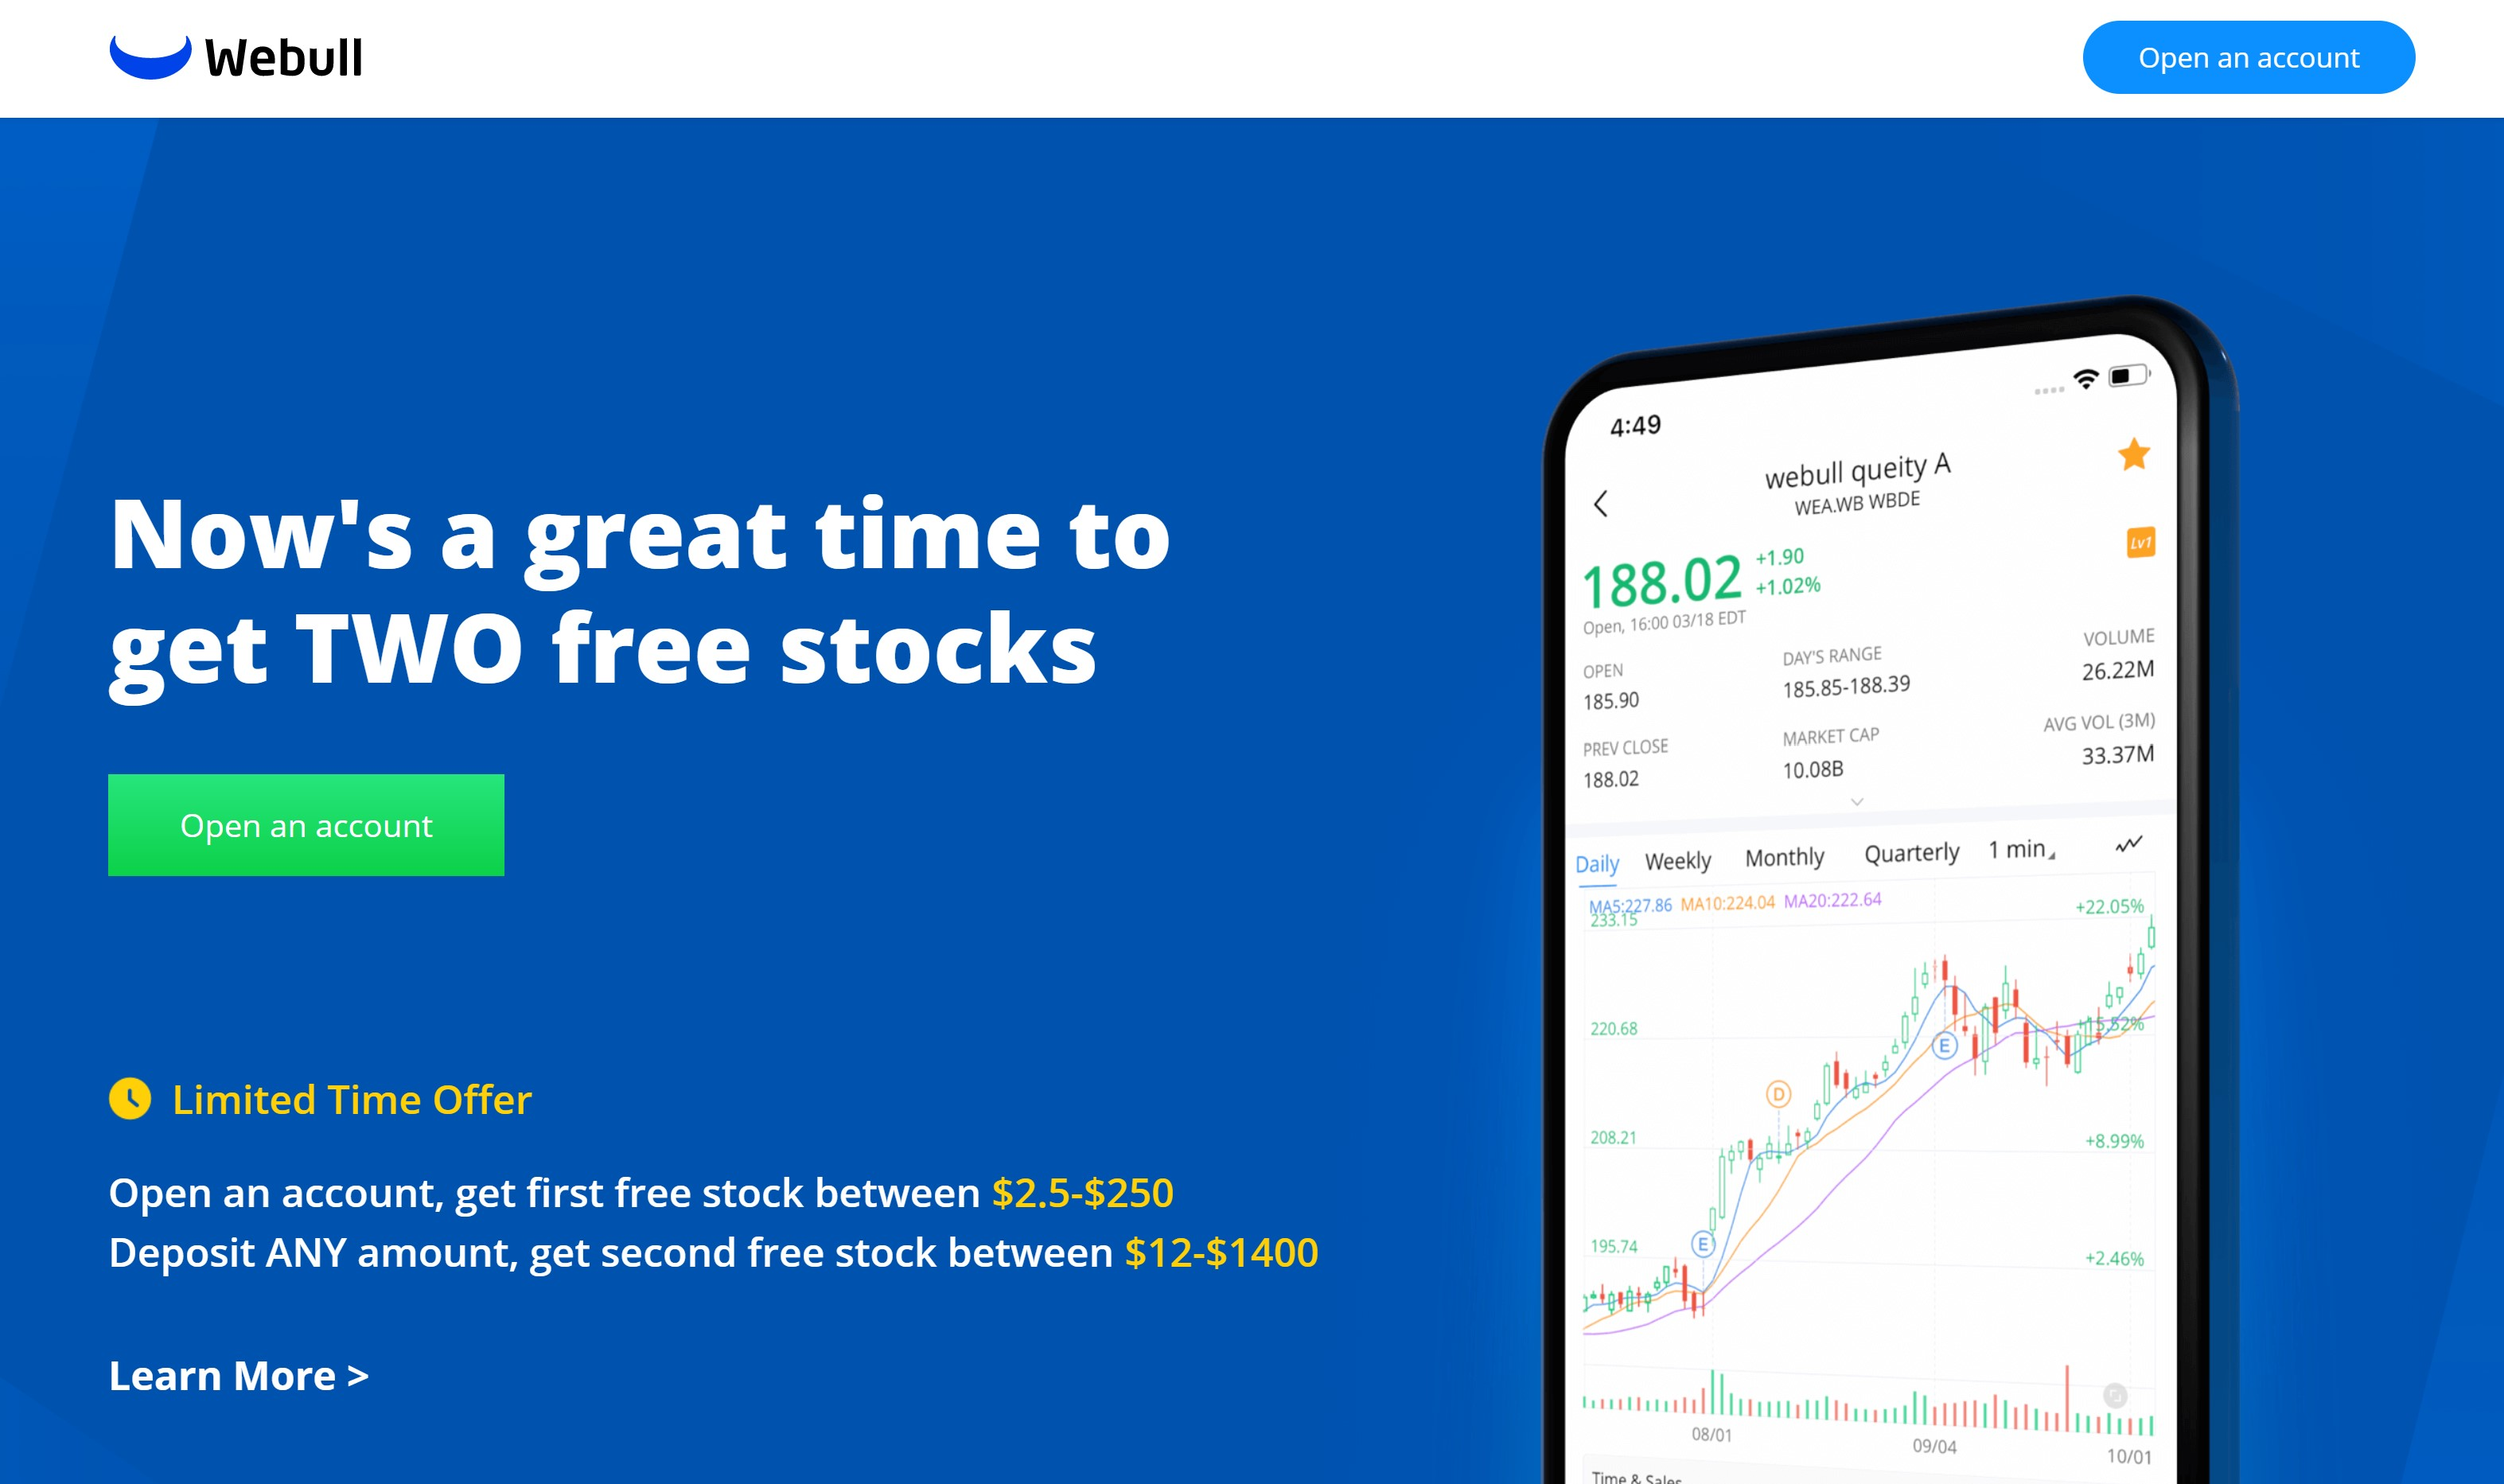 Earn 4 free shares on webull